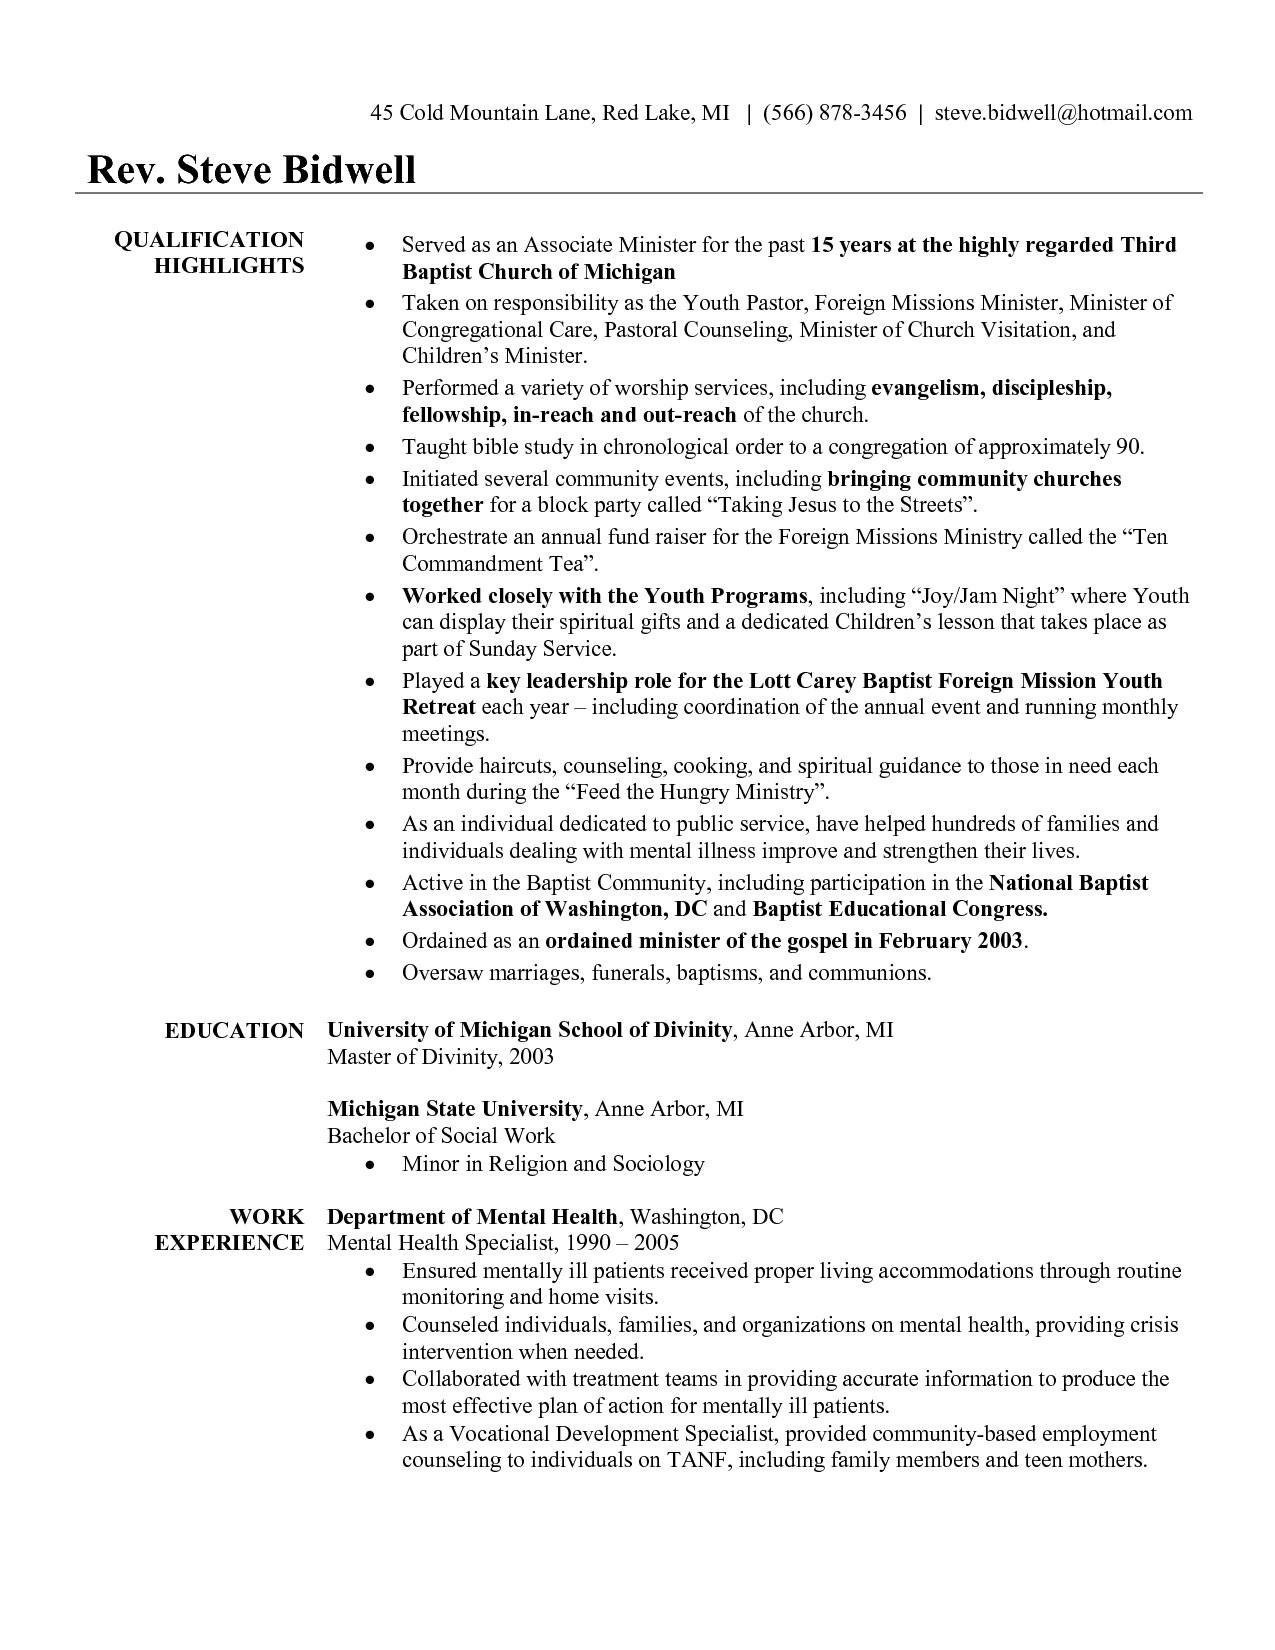 youth pastor resume template example-Youth Pastor Resume Awesome Pastor Resume Template Free Unique Qlikview Resume Sample Luxury Od Youth 6-i